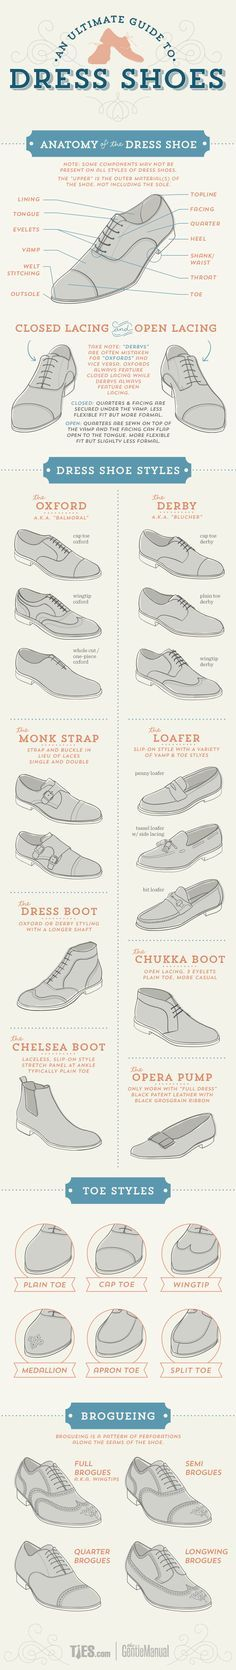 An ultimate guide to men's dress shoes.